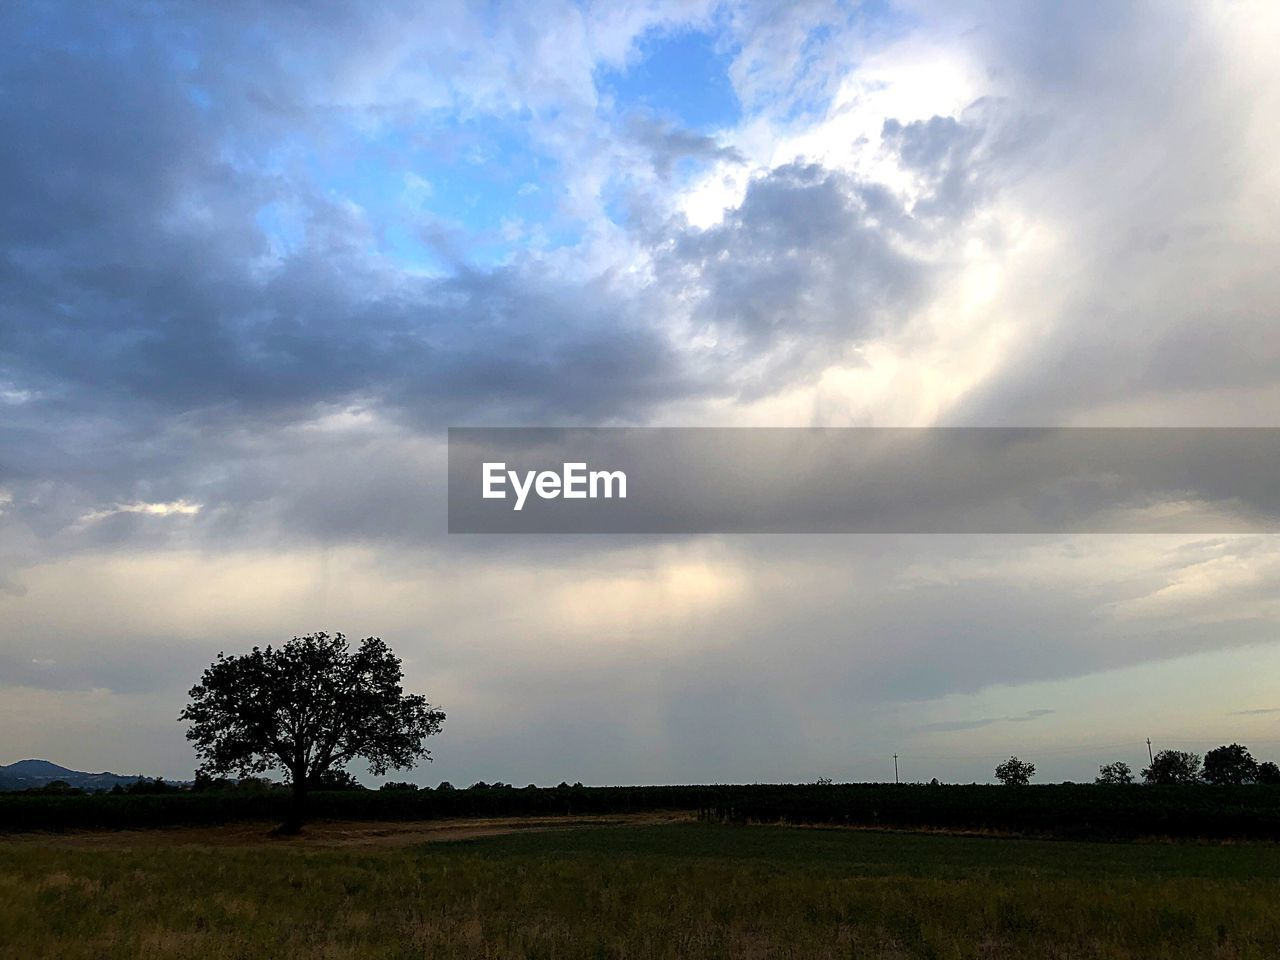 sky, cloud - sky, beauty in nature, landscape, tree, field, tranquility, scenics - nature, tranquil scene, plant, environment, land, nature, no people, non-urban scene, silhouette, growth, outdoors, sunset, grass